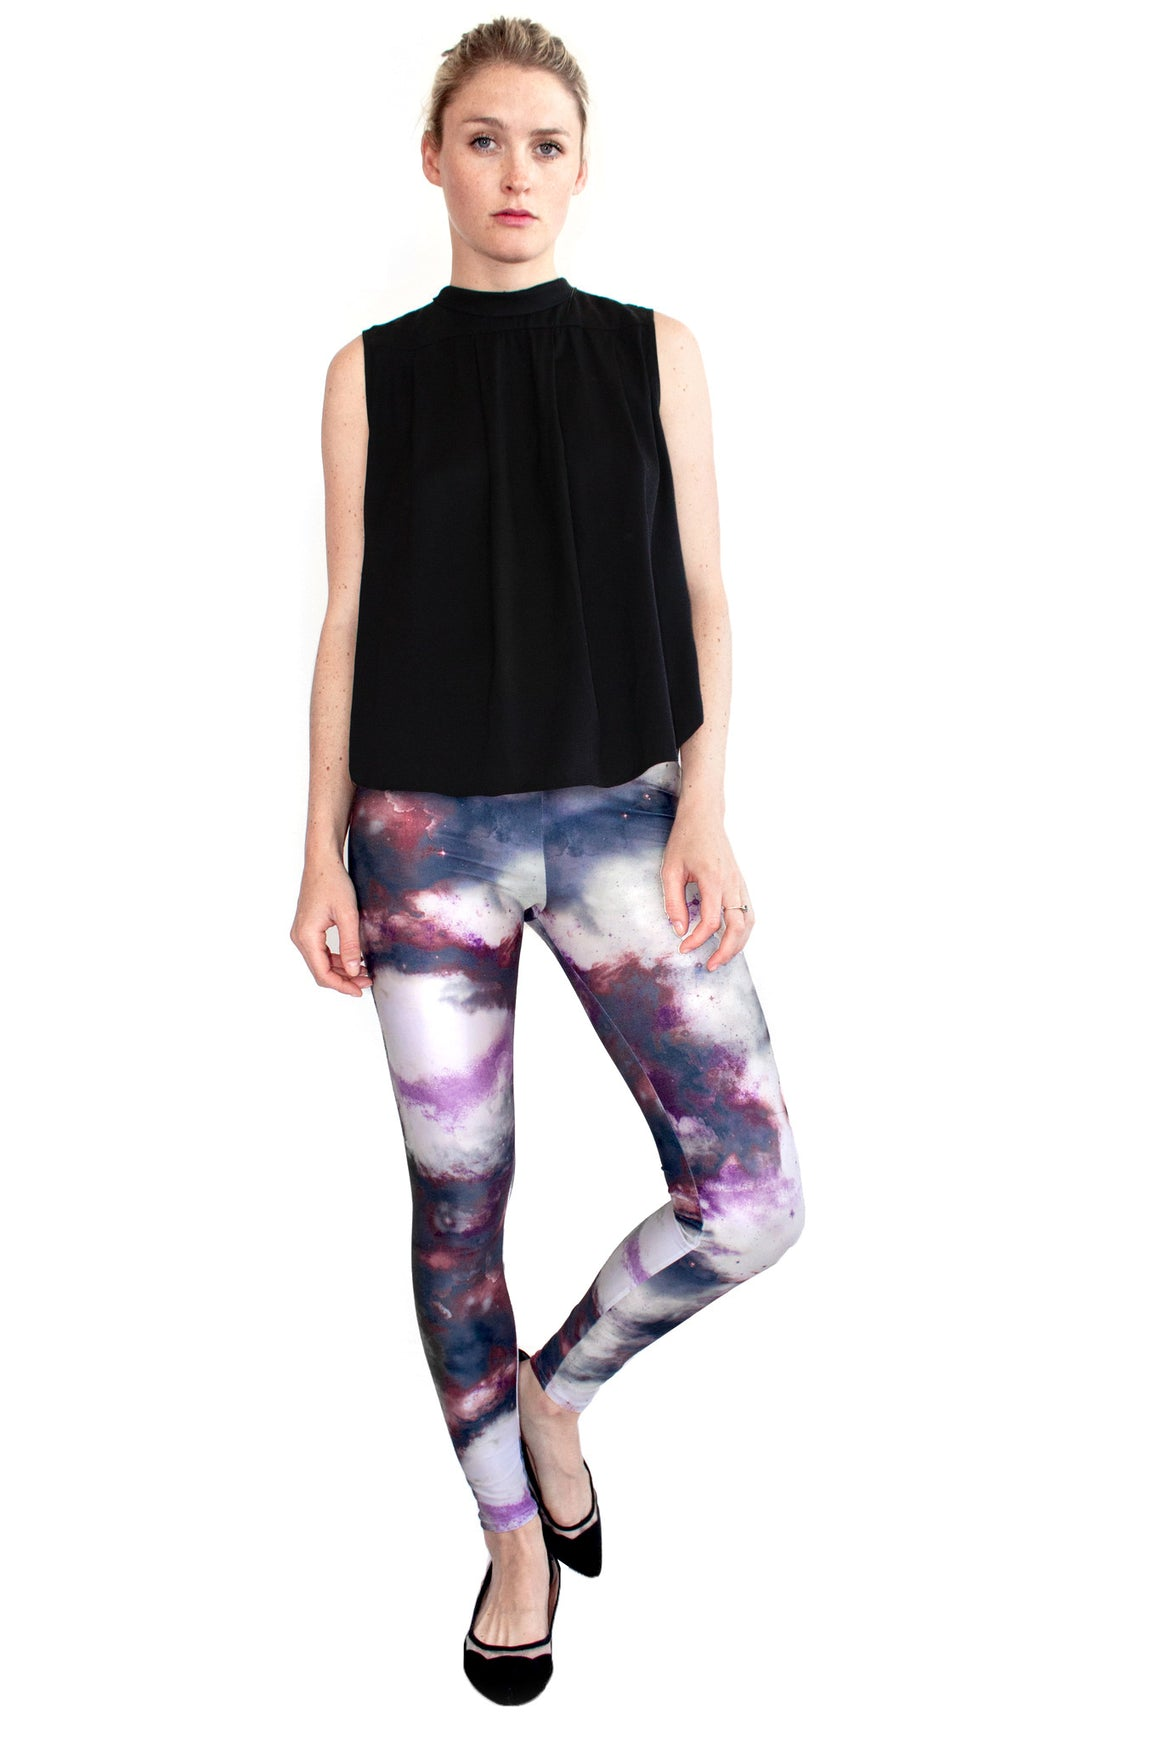 Galaxy Leggings, Shadowplay New York, Galaxy Clothing